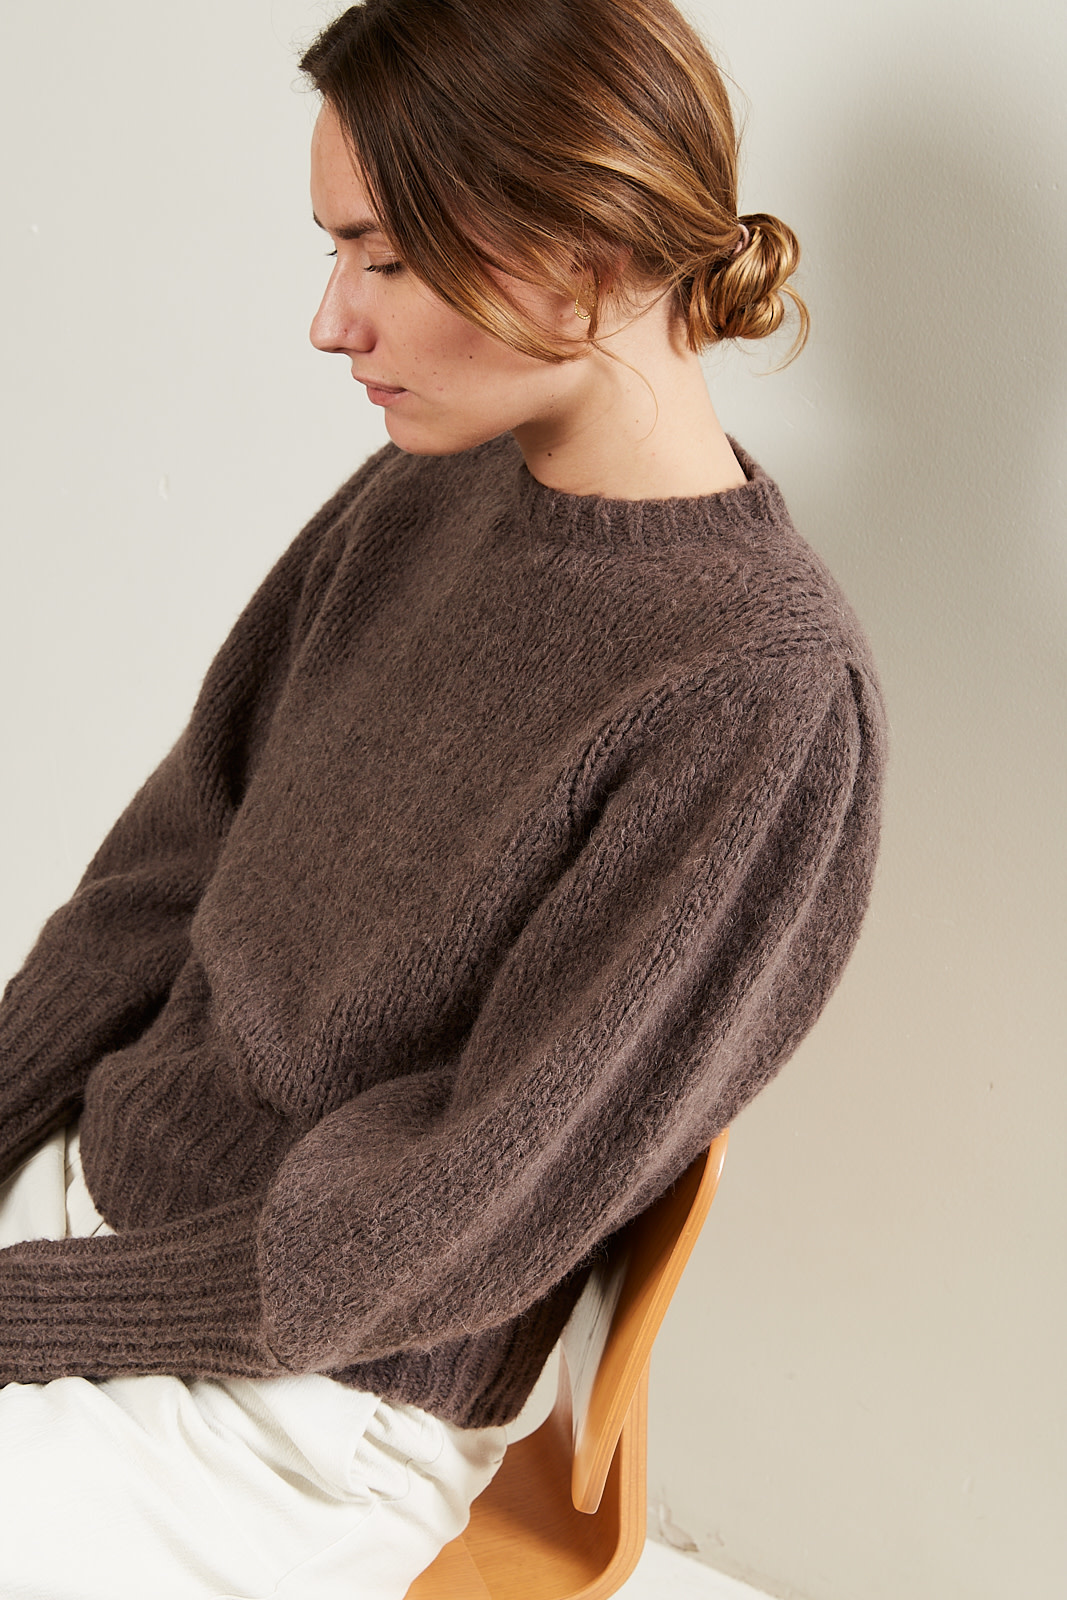 Les Coyotes de Paris - Mindy alpaca merino sweater